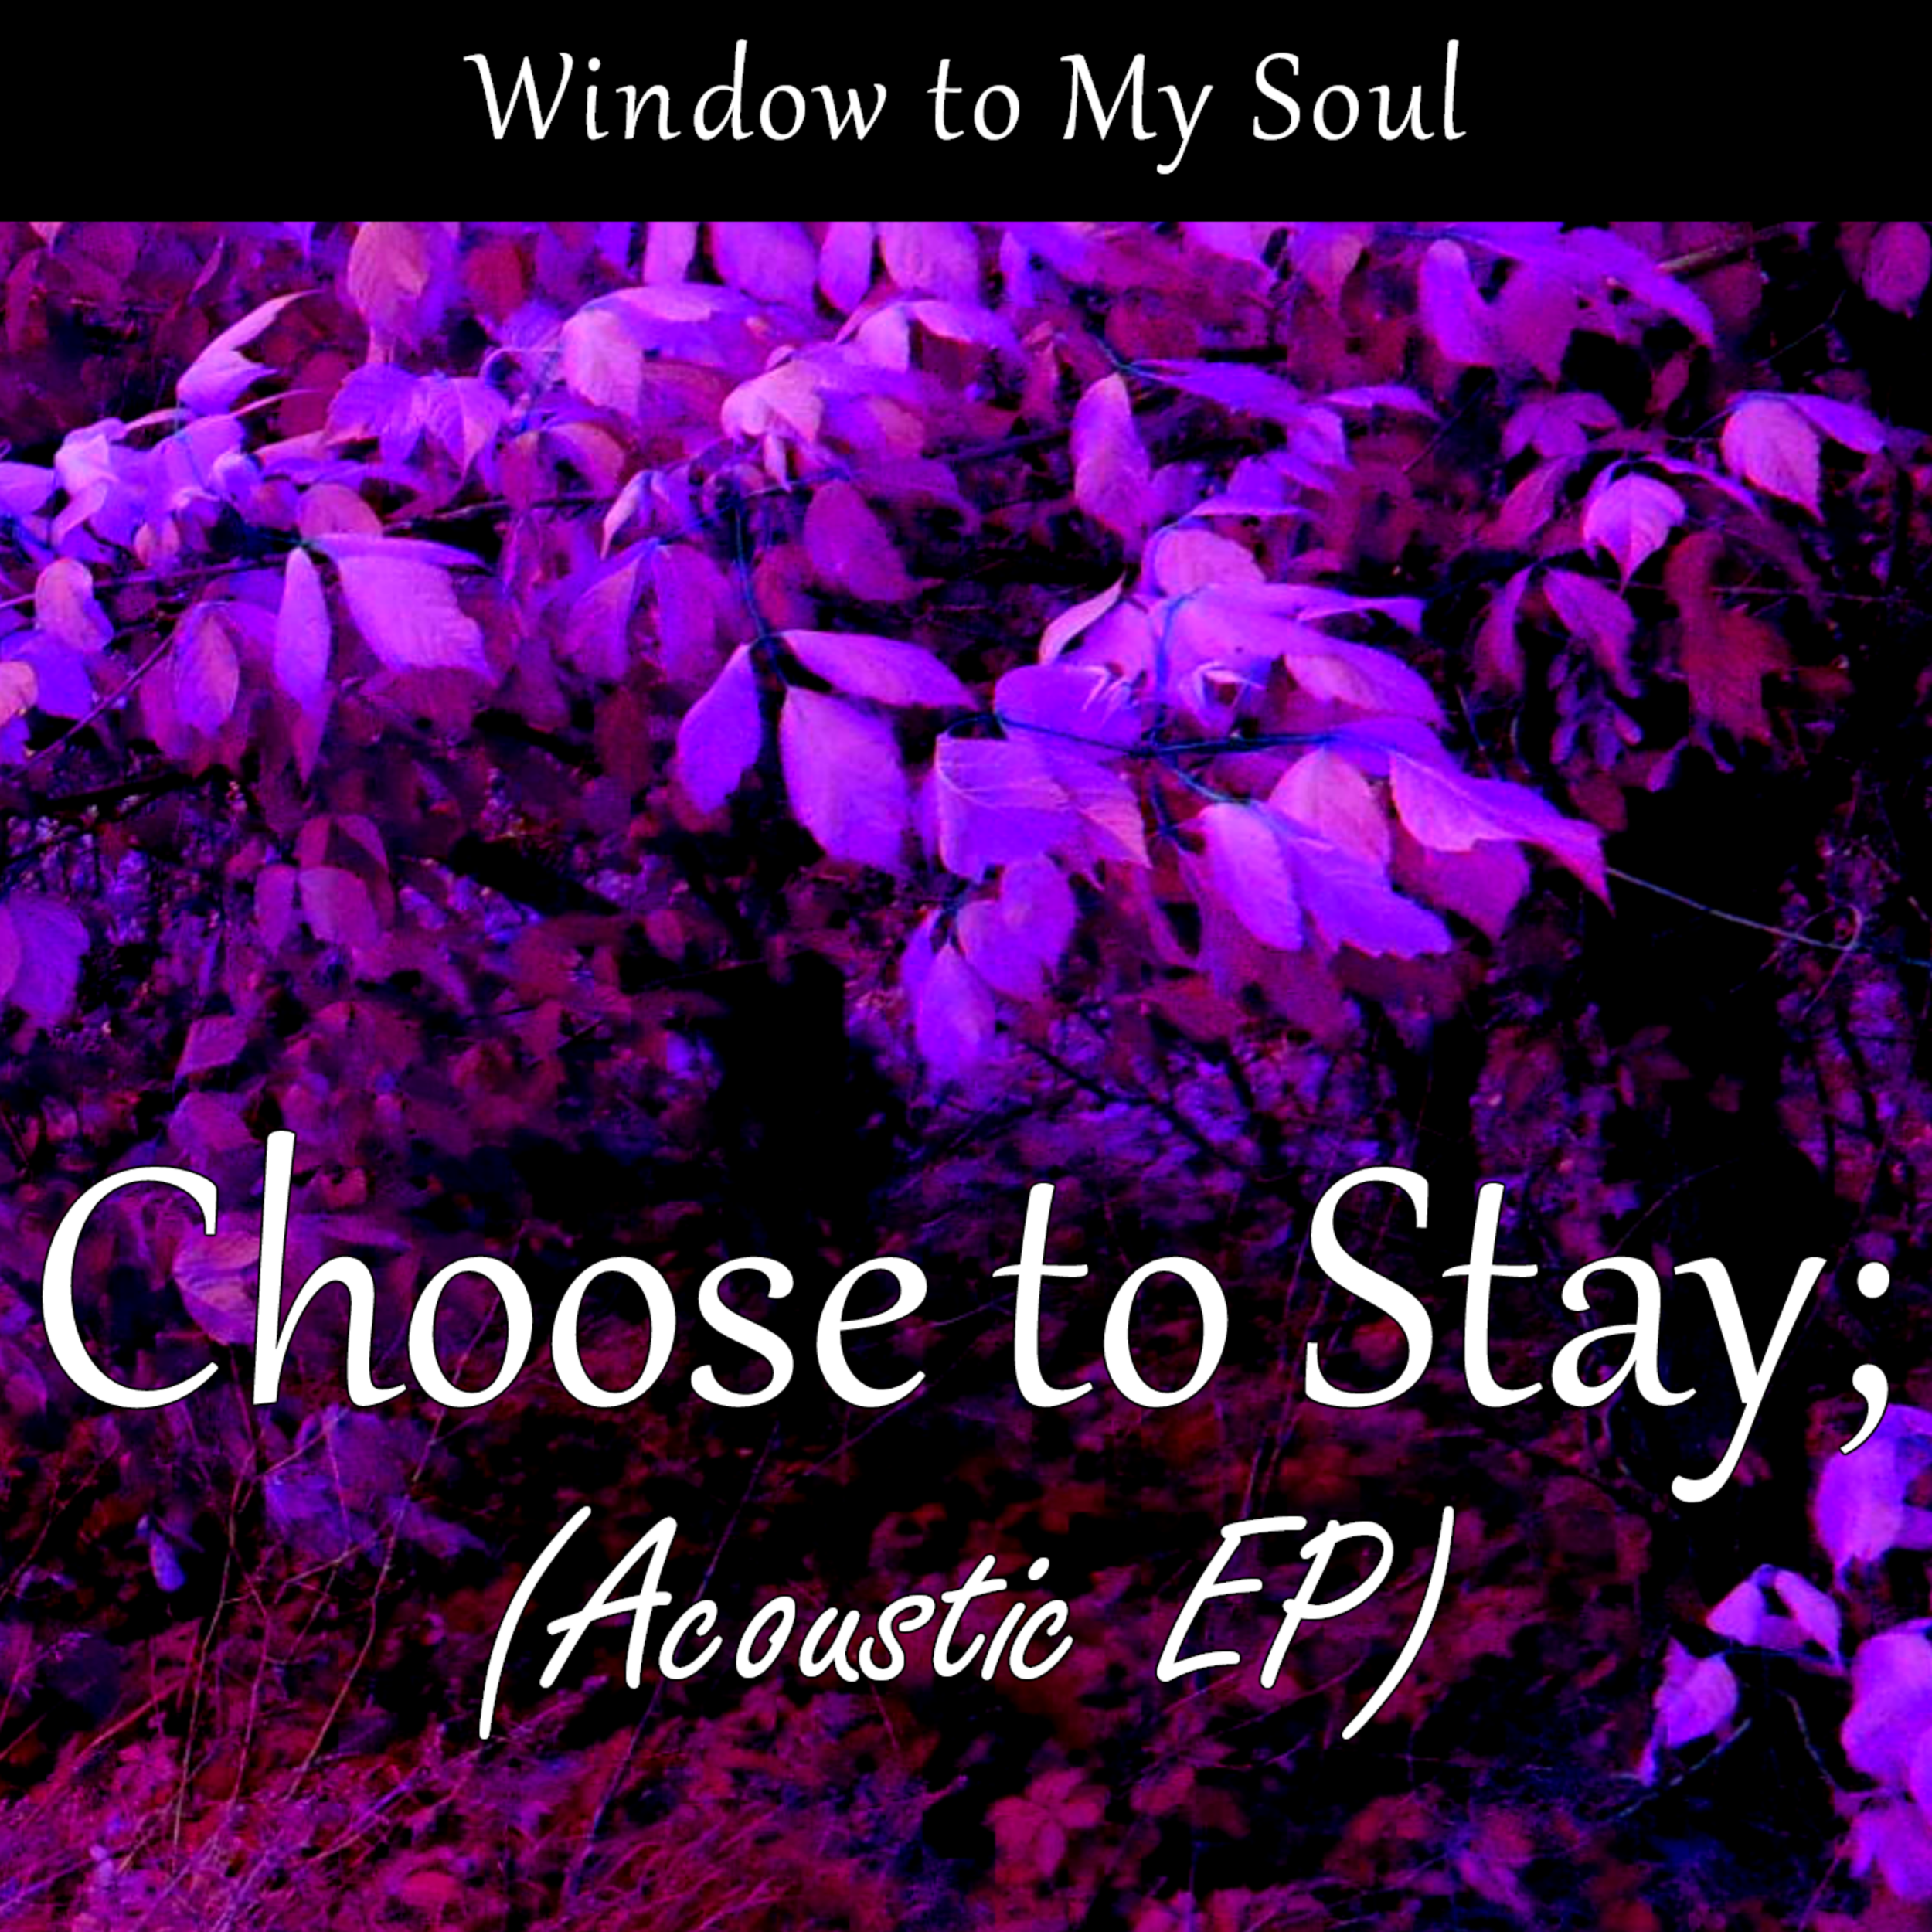 Choose to Stay; - WINDOW TO MY SOULAcoustic EP (2017)Spotify | iTunes | Google Play | Amazon Music | TIDAL